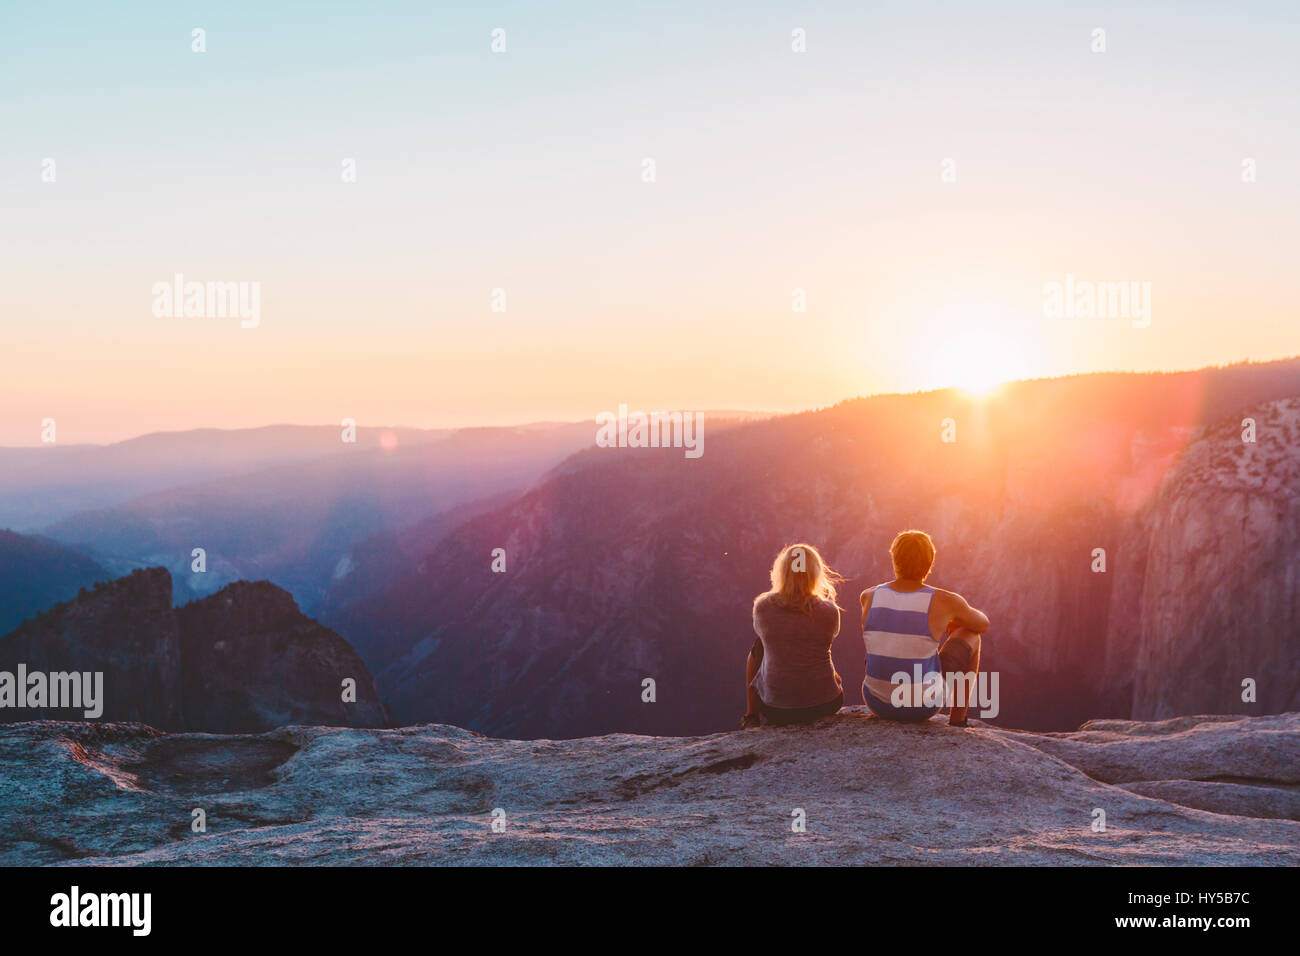 USA, California, Yosemite National Park, Taft Point, Man and woman watching sunset in mountains - Stock Image